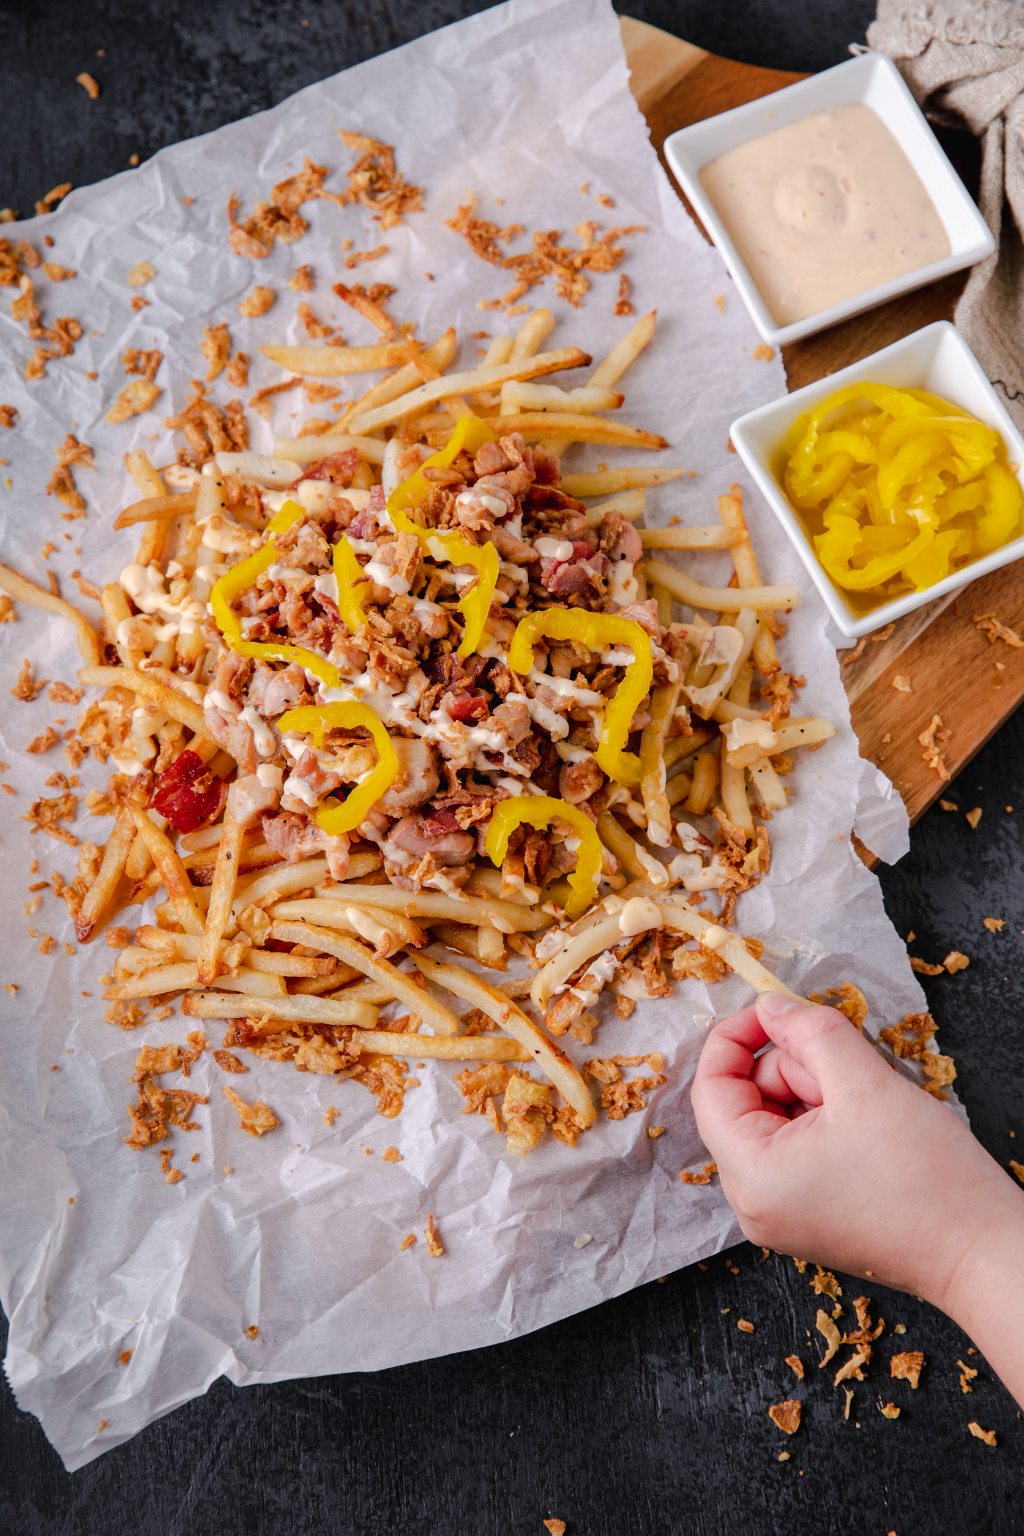 New Recipe: Loaded Fries